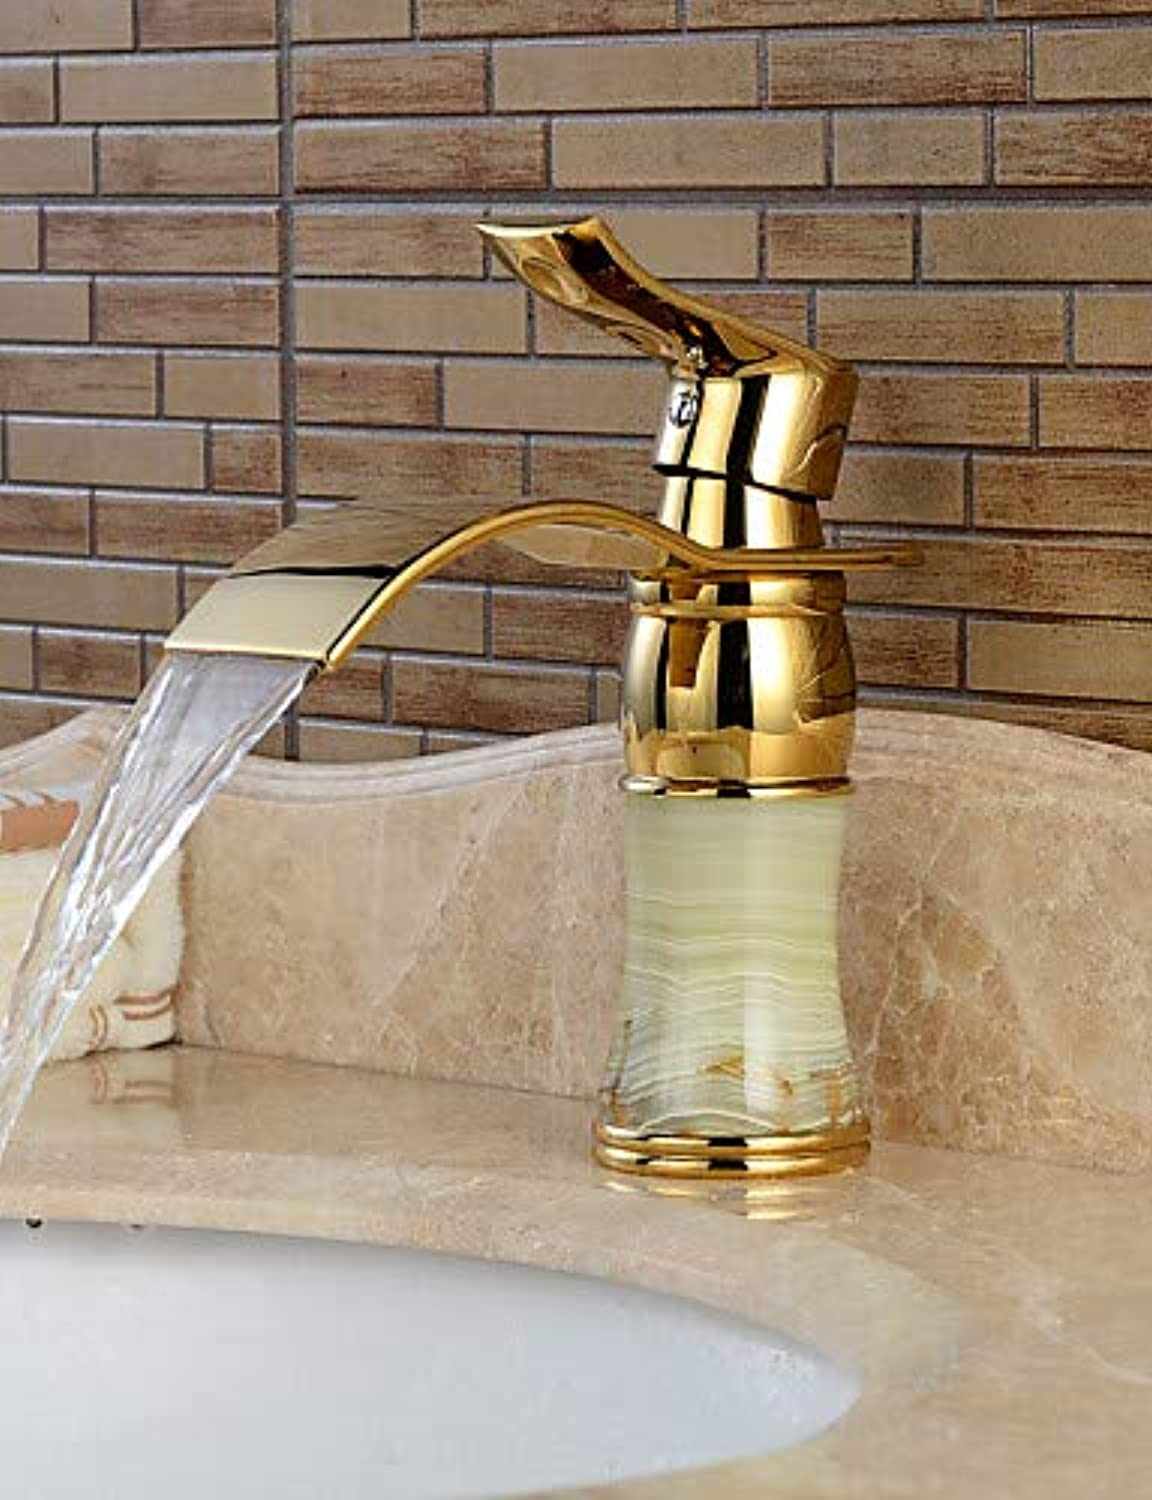 Mainstream home LPZSQ Tap Centerset Single Handle One Hole in Ti-PVD Bathroom Sink Faucet, golden+white  1078